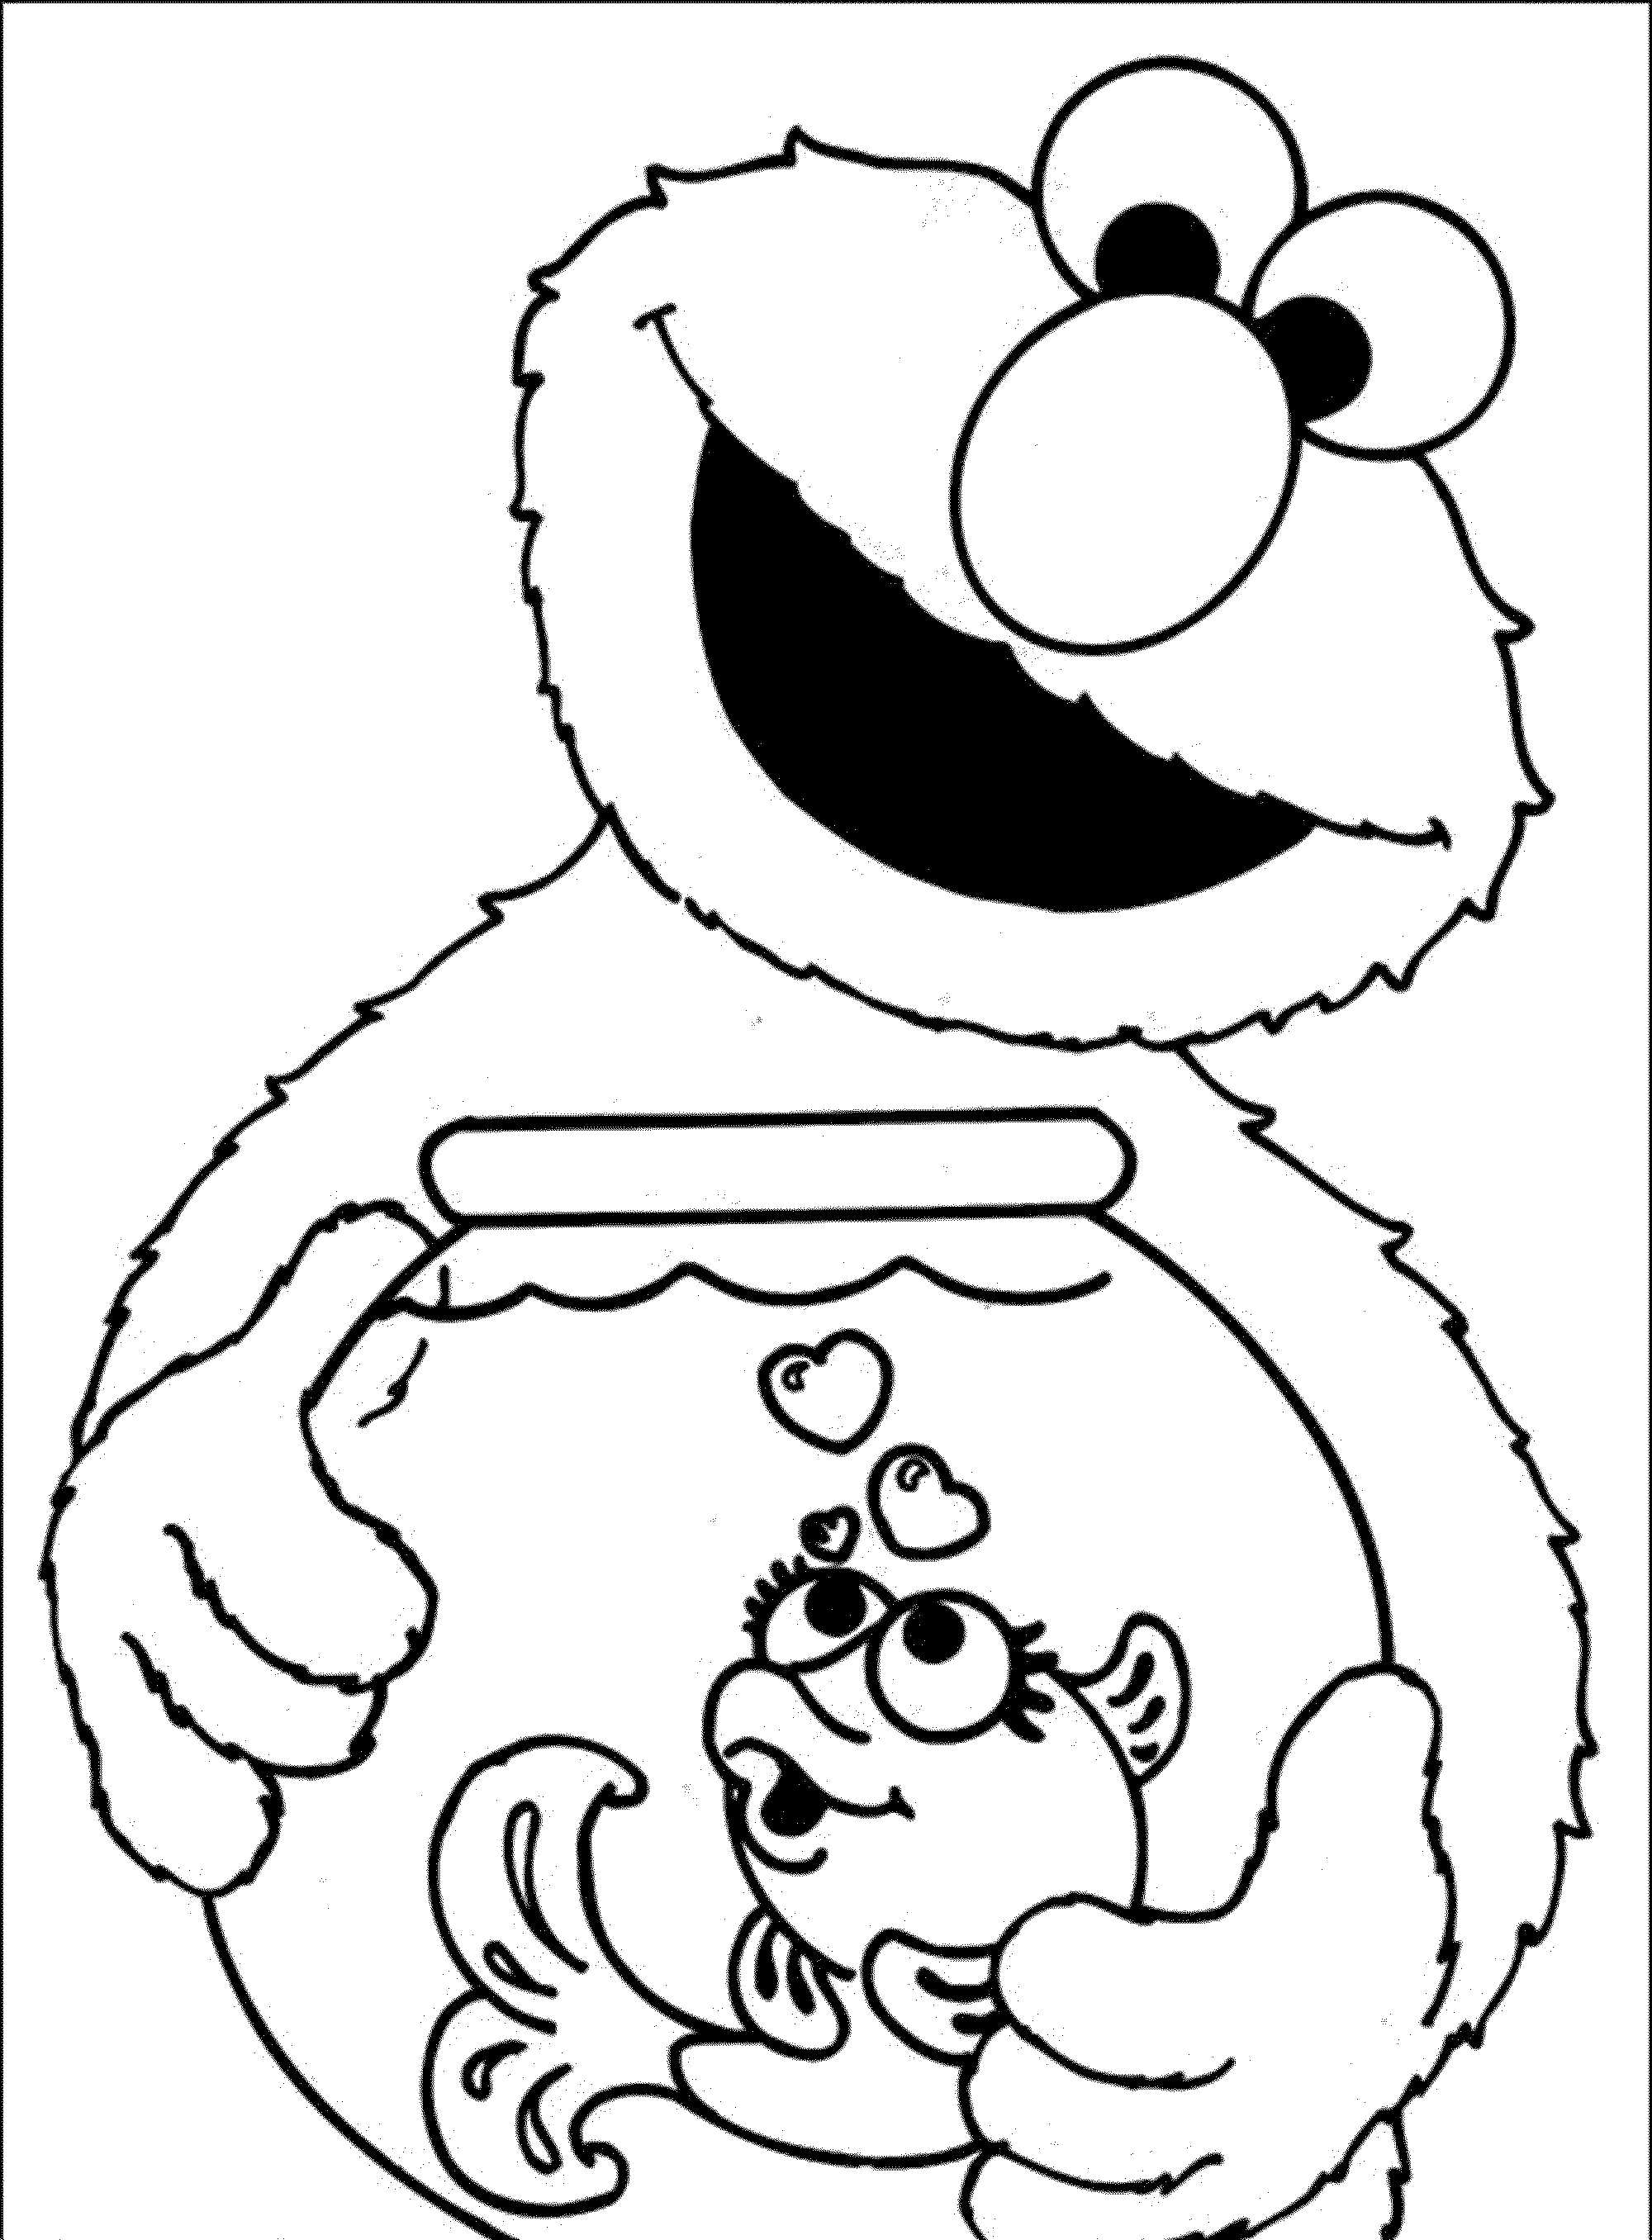 Elmo And Dorothy Coloring Pages Printable Kids Colouring Pages Elmo Coloring Pages Sesame Street Coloring Pages Birthday Coloring Pages